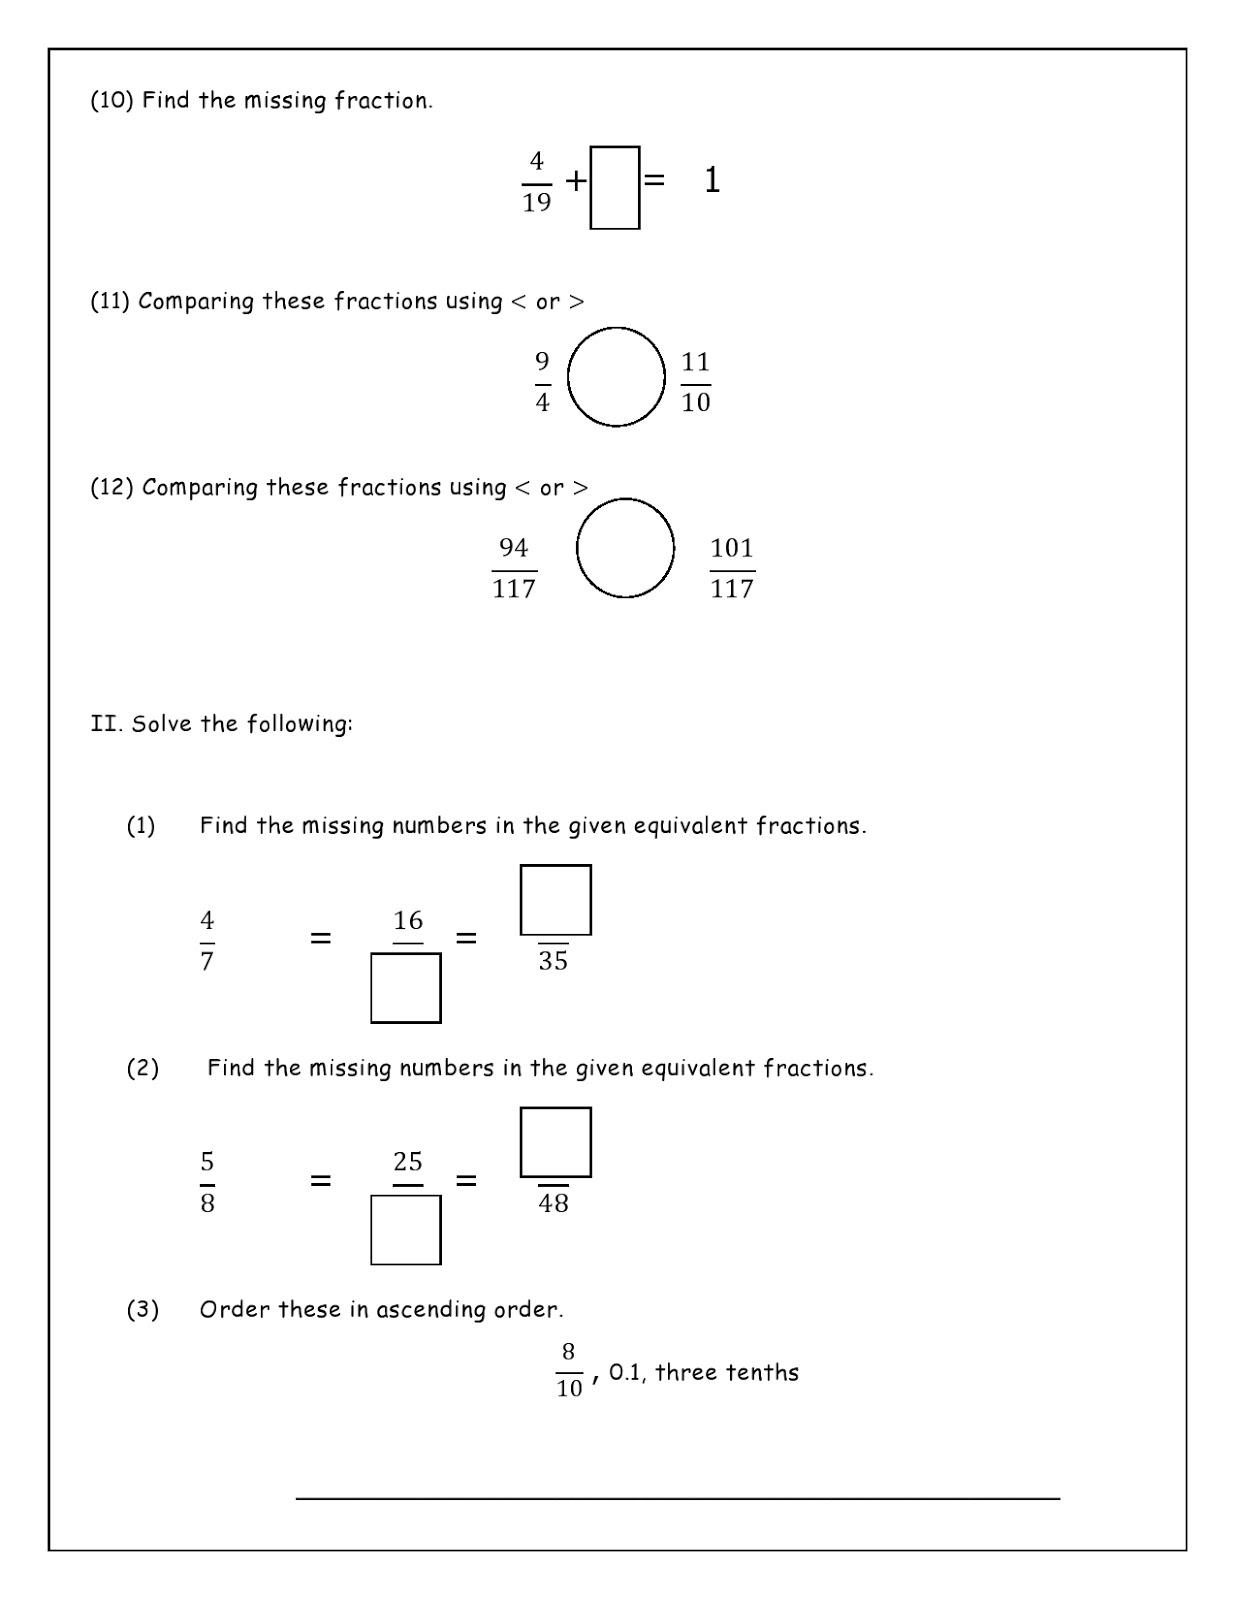 Birla World School Oman Revision Worksheets For Grade 4 As On 26 10